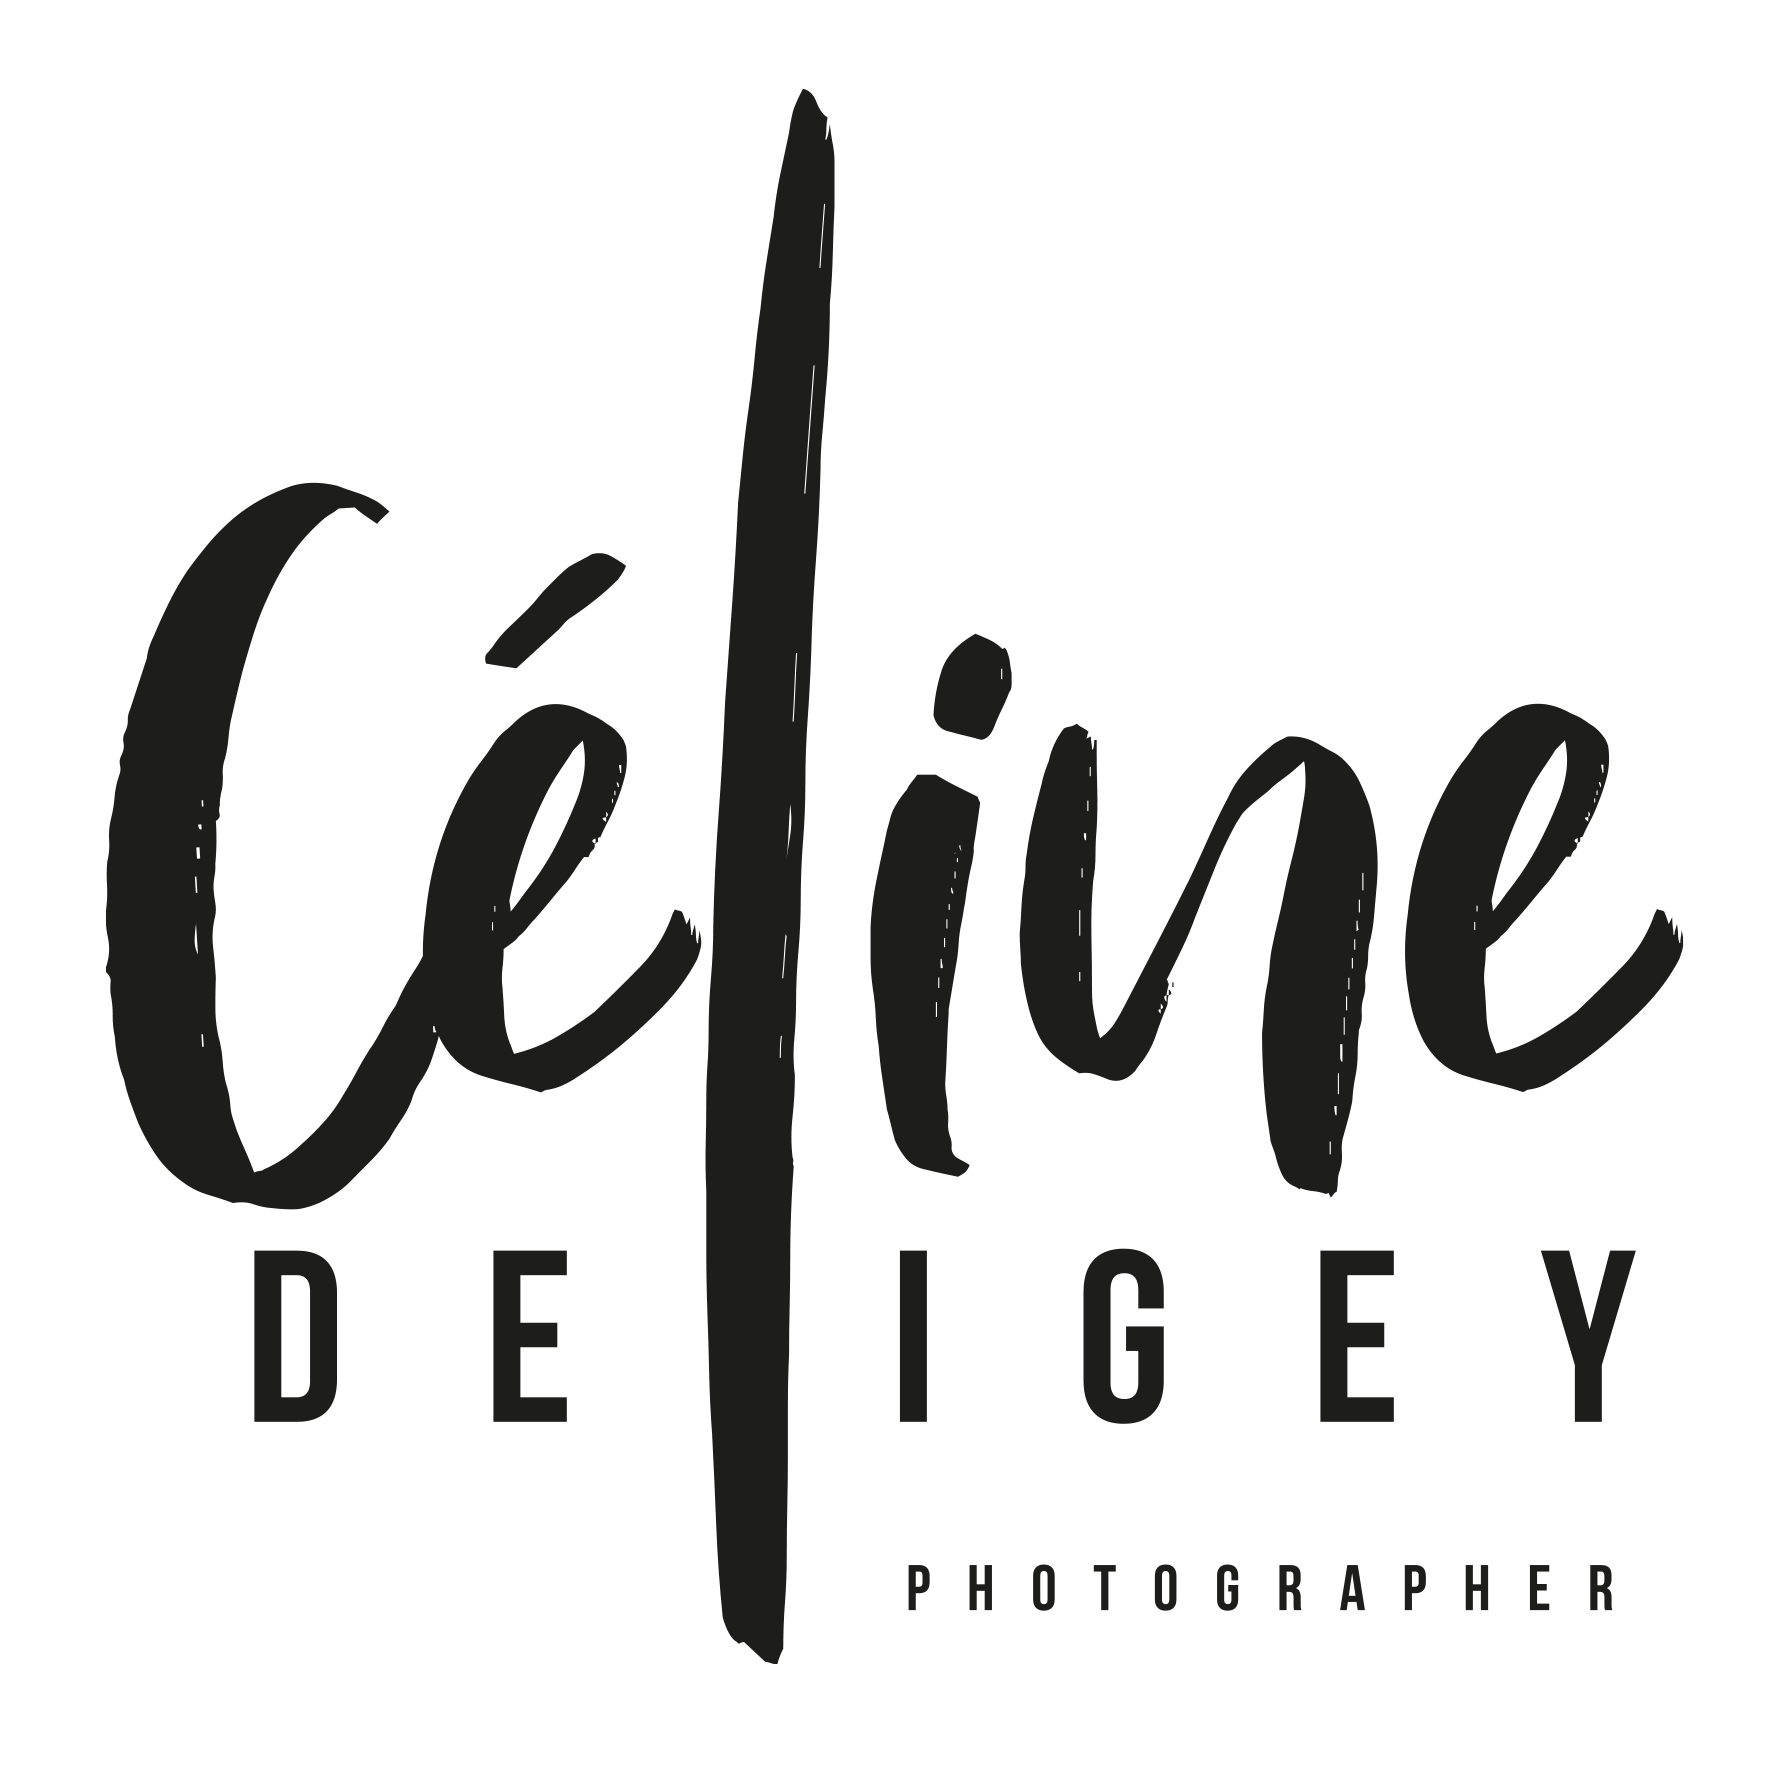 Celine Deligey Photographer